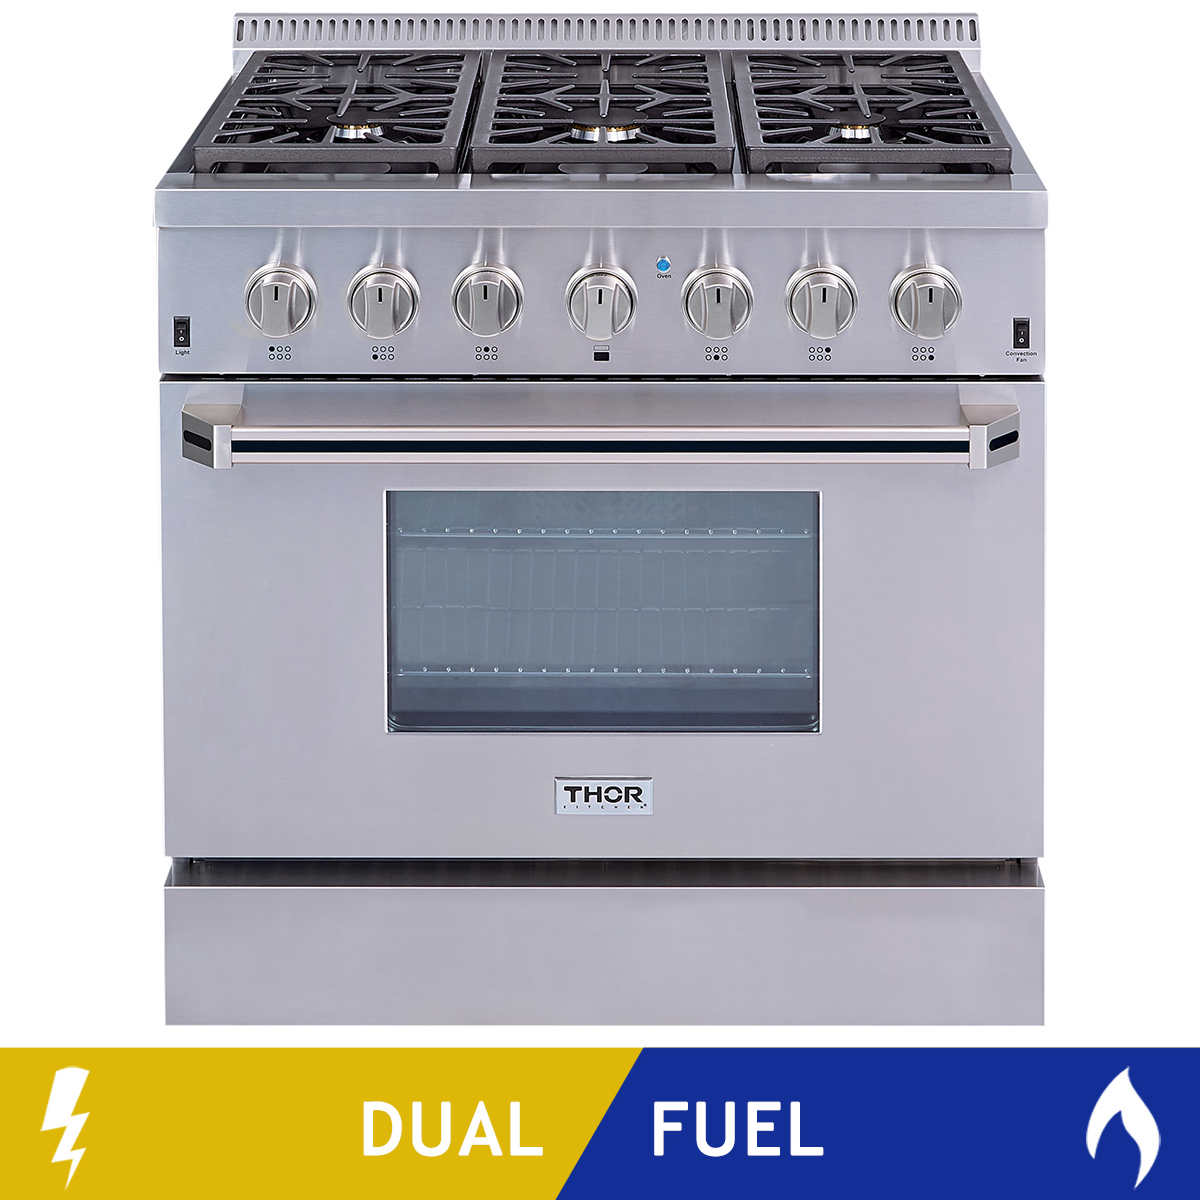 Thor Kitchen 36 in  Dual Fuel Range with 6 Burners